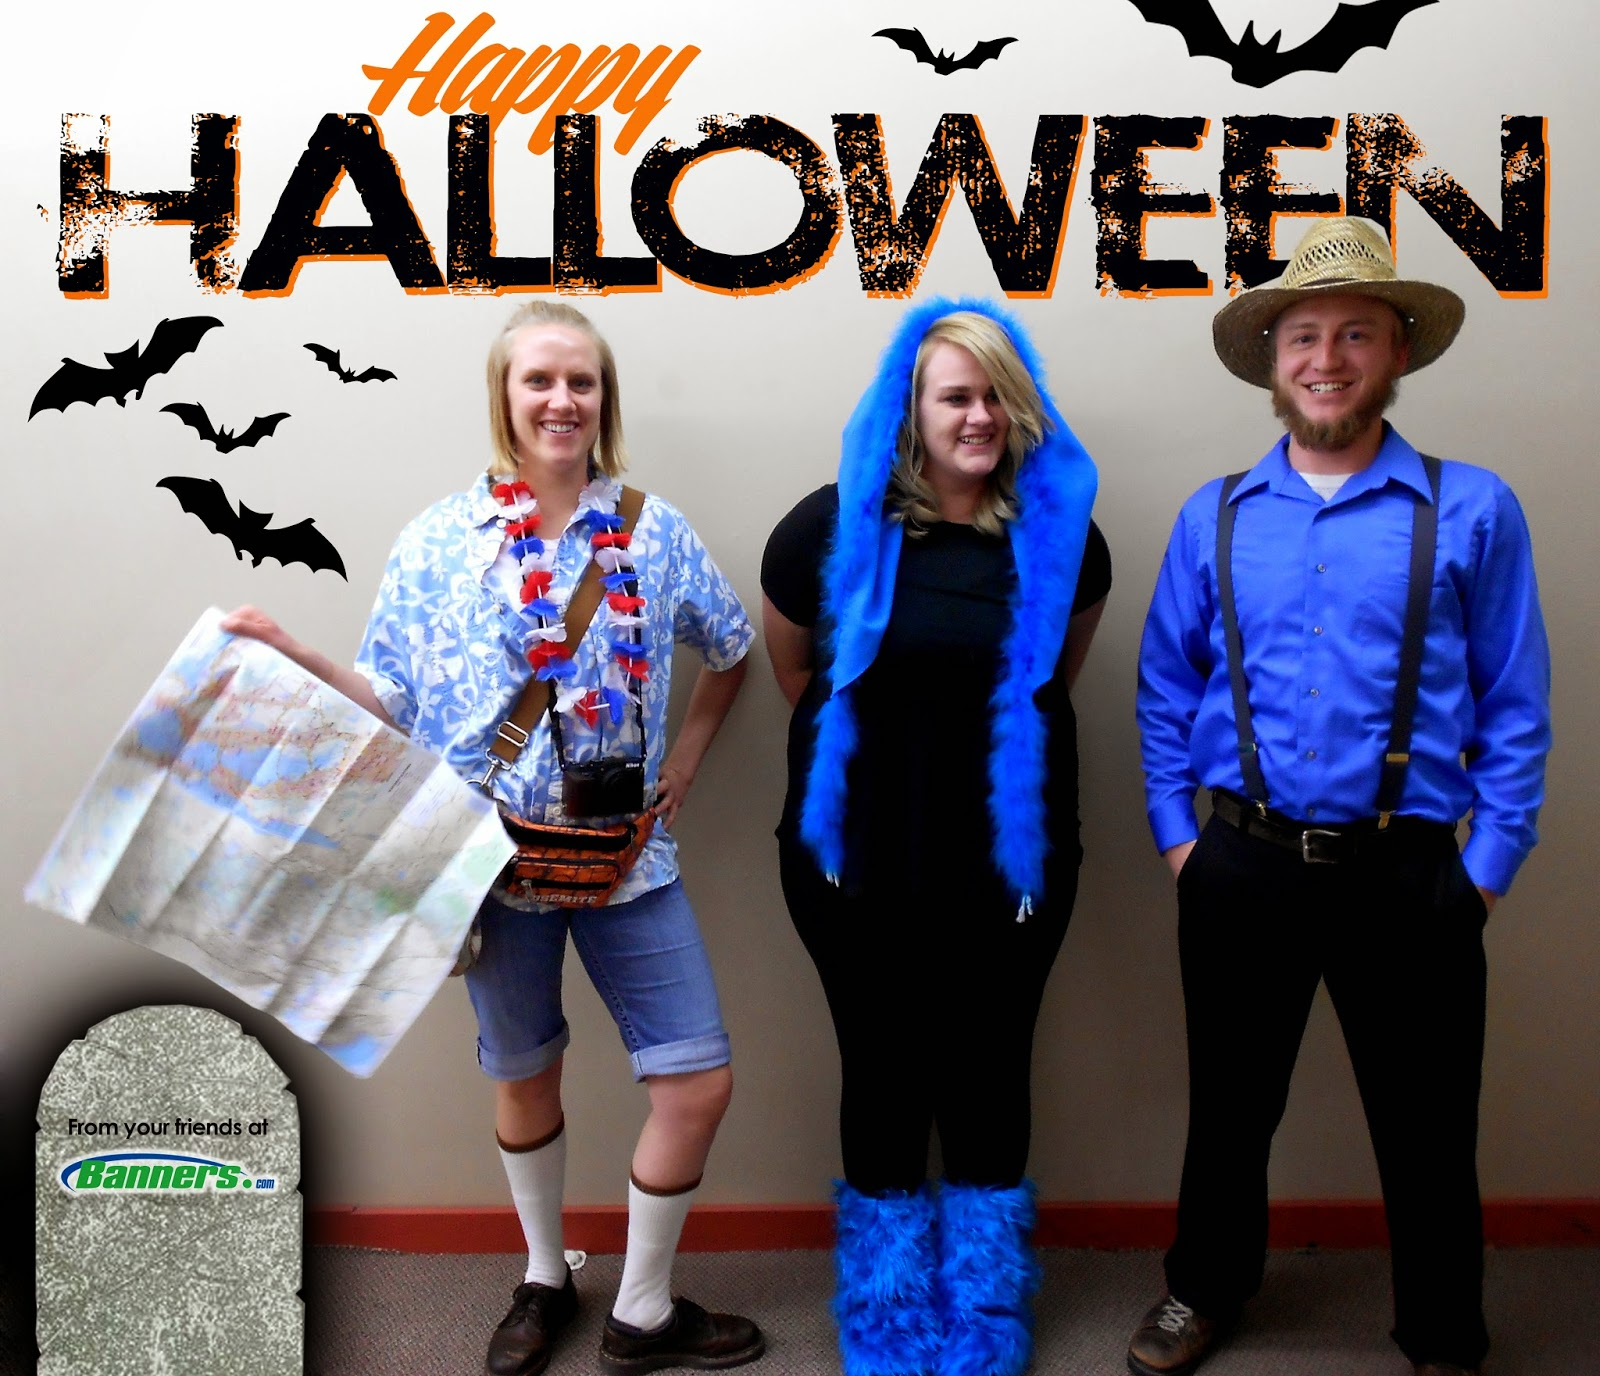 The Tourist, Babe the Big Blue Ox, and an Amish Farmer Halloween Costumes